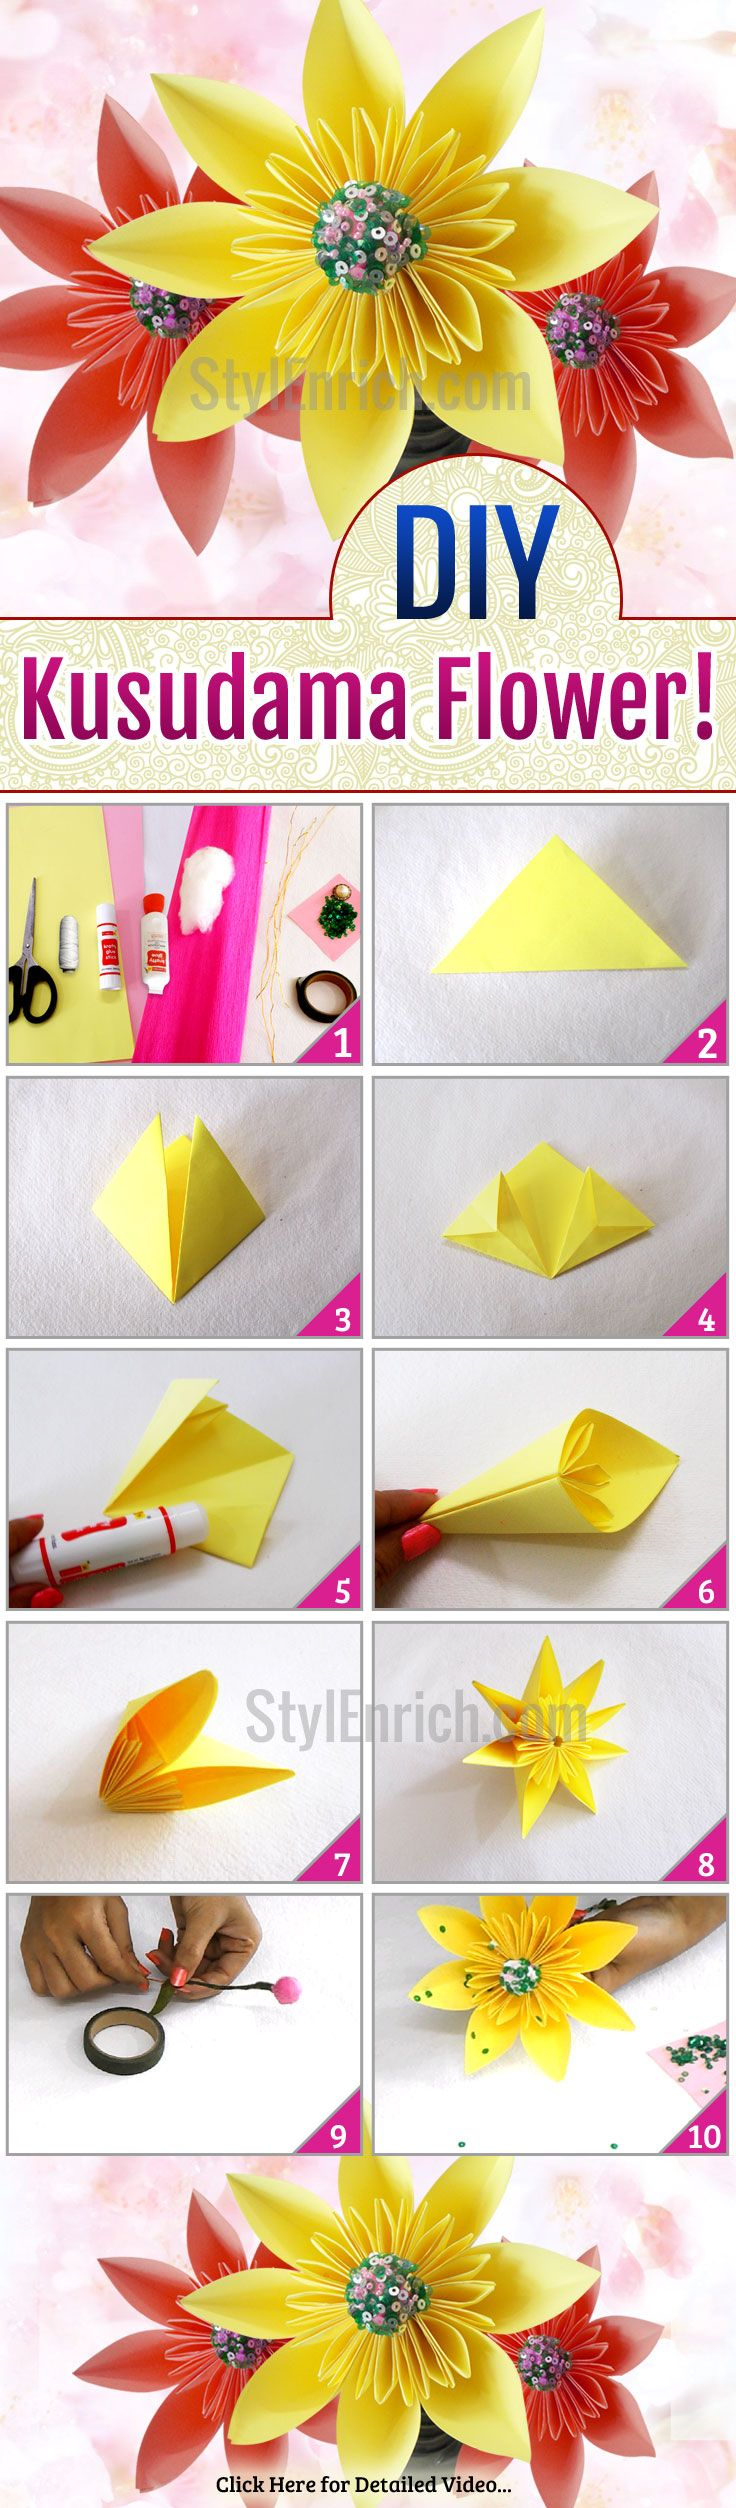 Small paper flowers craft - Find This Pin And More On Amazing Diy Crafts Easy Diy Projects